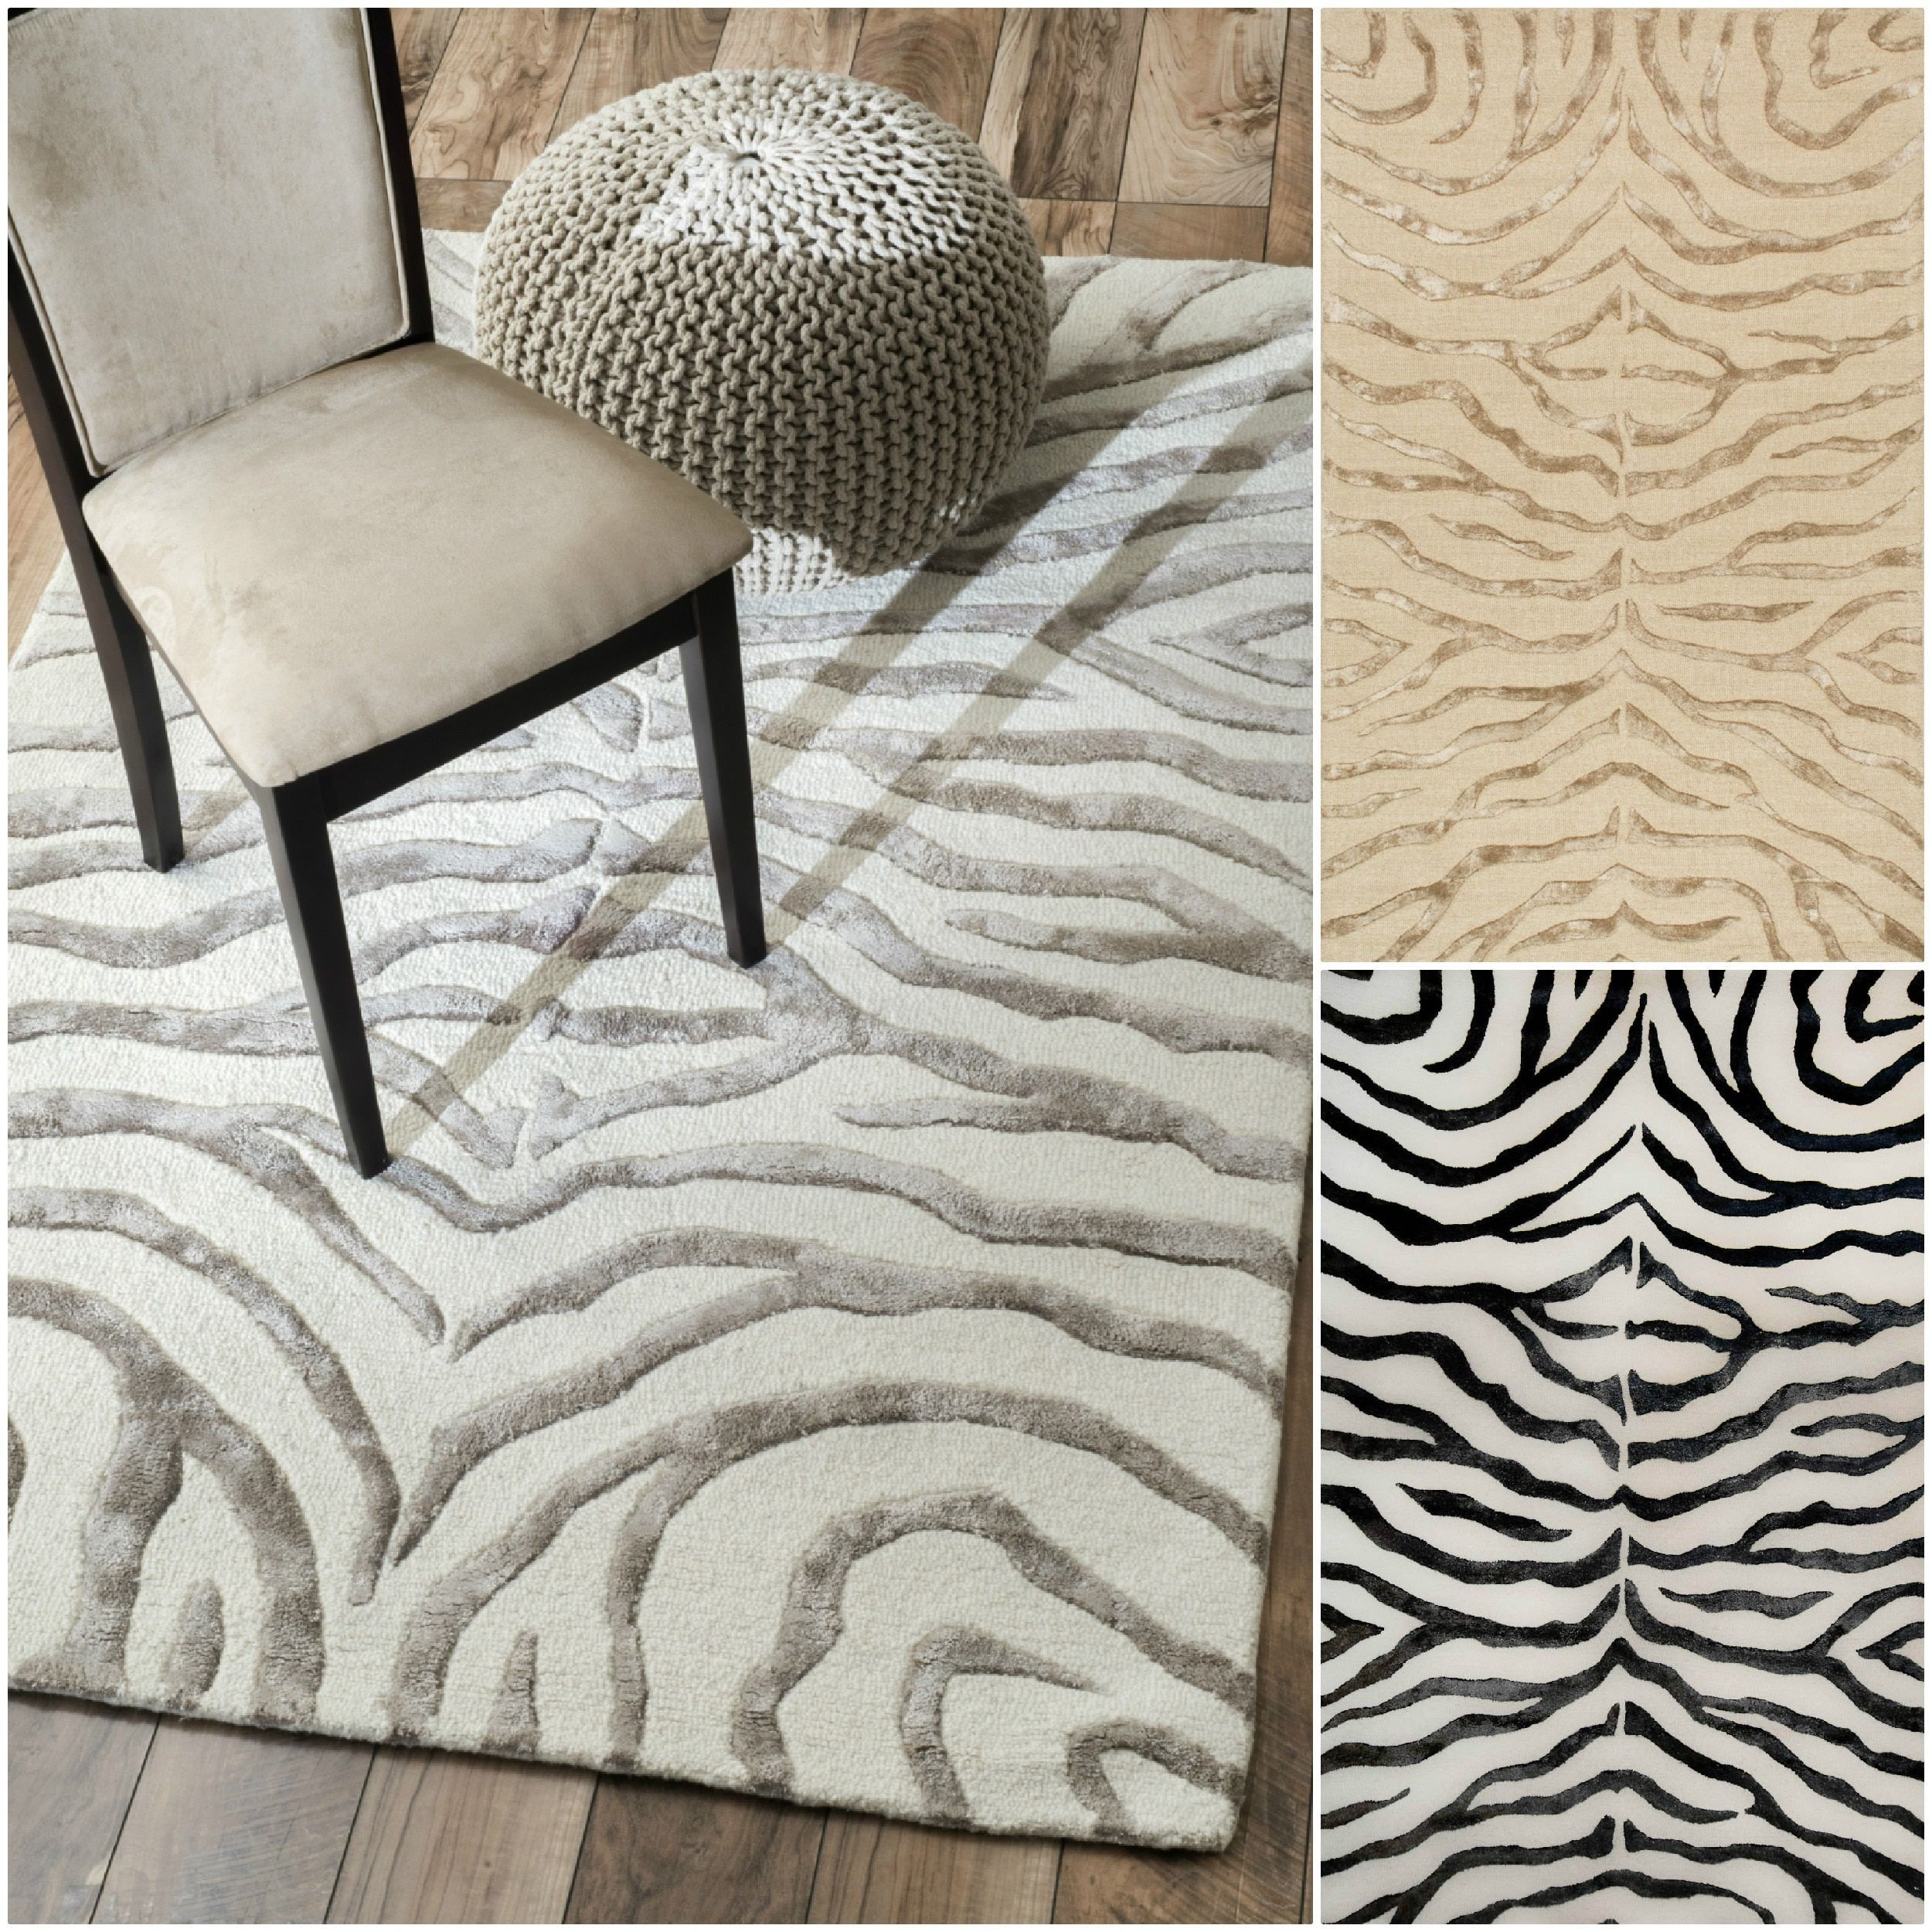 Online Shopping Bedding Furniture Electronics Jewelry Clothing More Zebra Rug Zebra Area Rug Contemporary Rugs